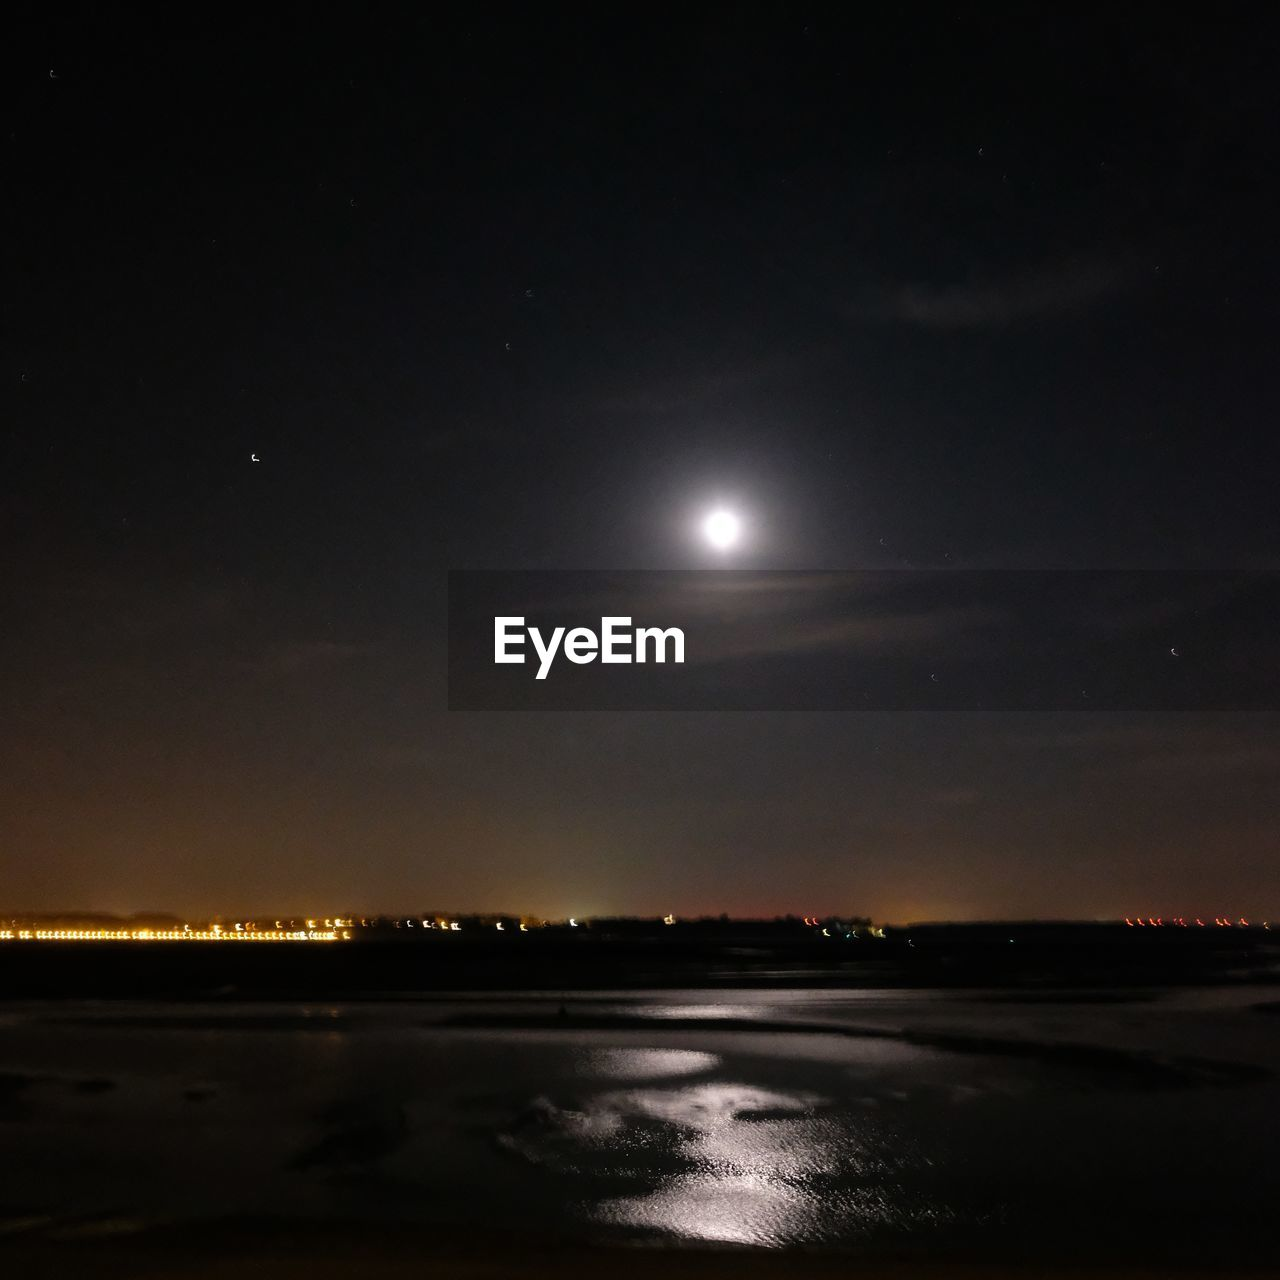 sky, night, moon, beauty in nature, water, nature, scenics - nature, tranquility, no people, tranquil scene, full moon, space, reflection, astronomy, waterfront, moonlight, cloud - sky, outdoors, illuminated, planetary moon